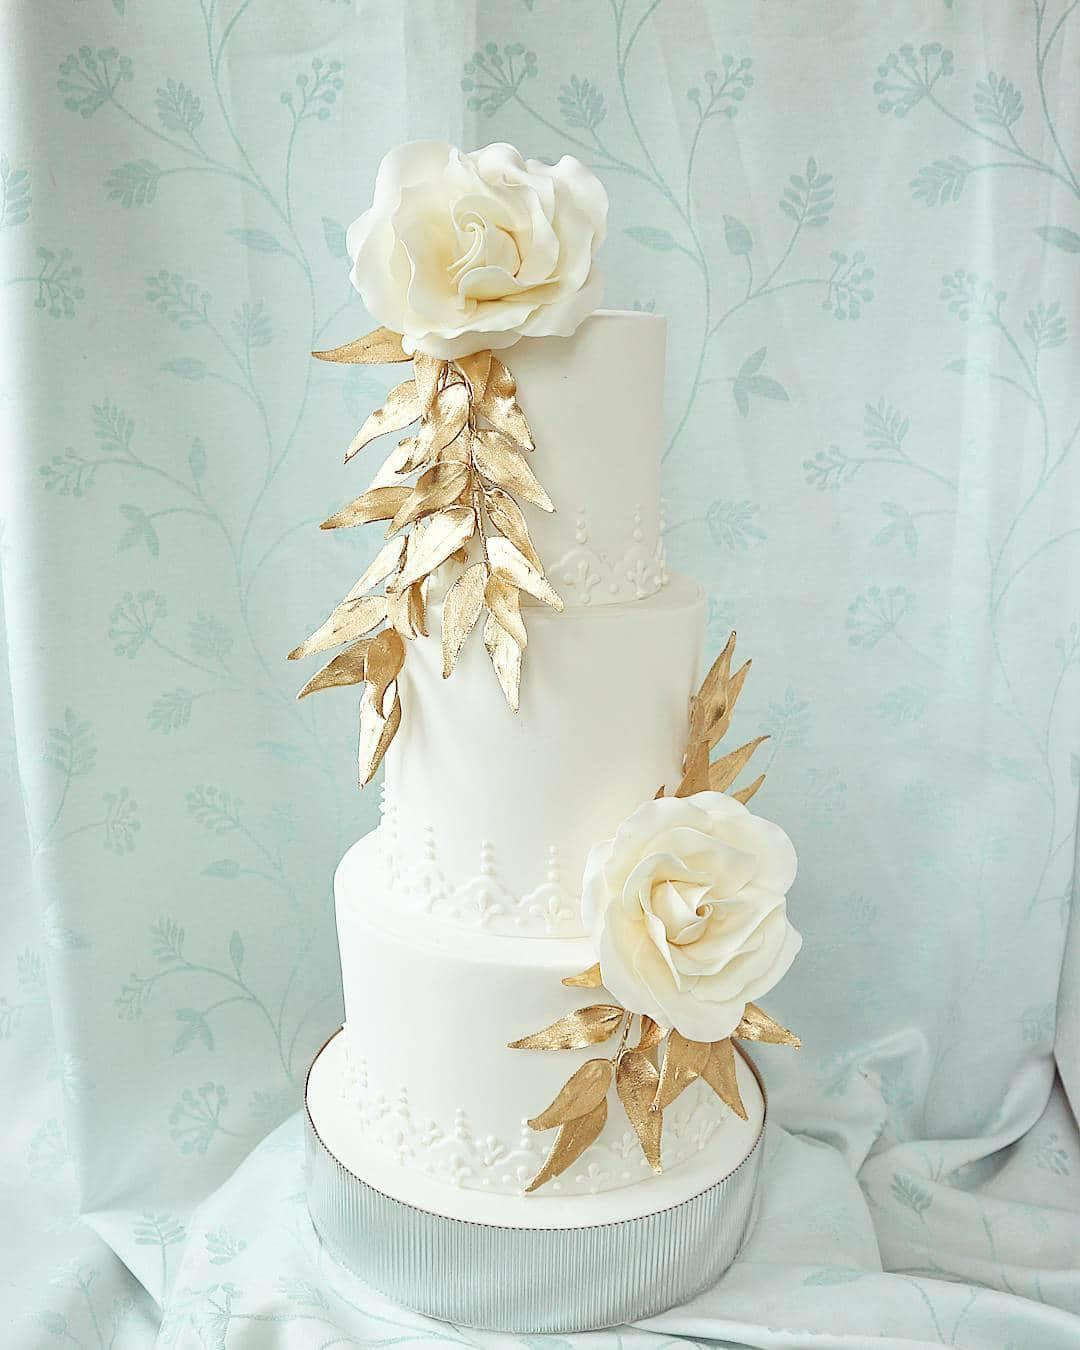 All white wedding cake with gold leaves